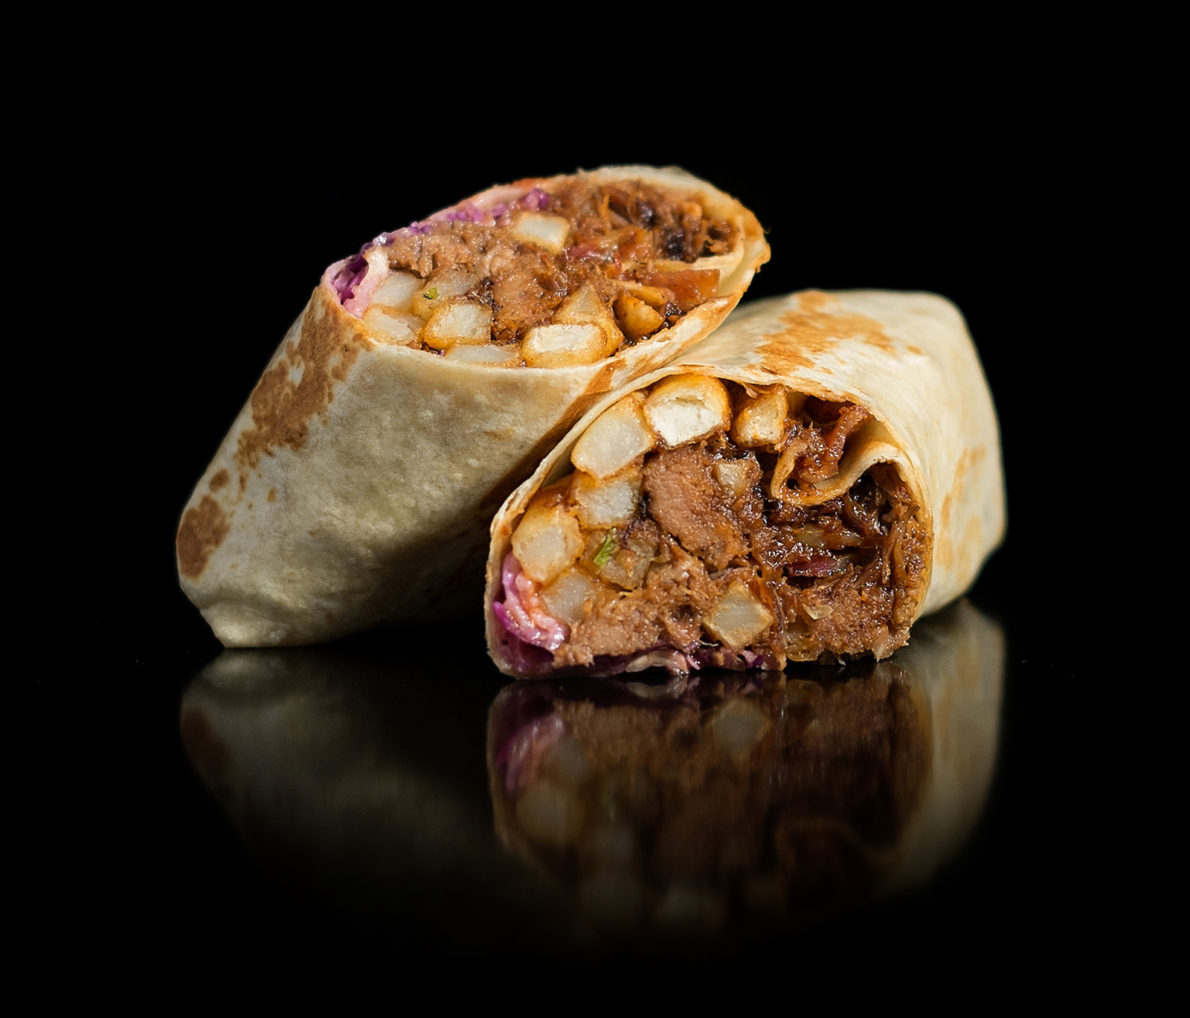 The California Bacon BBQ Burrito